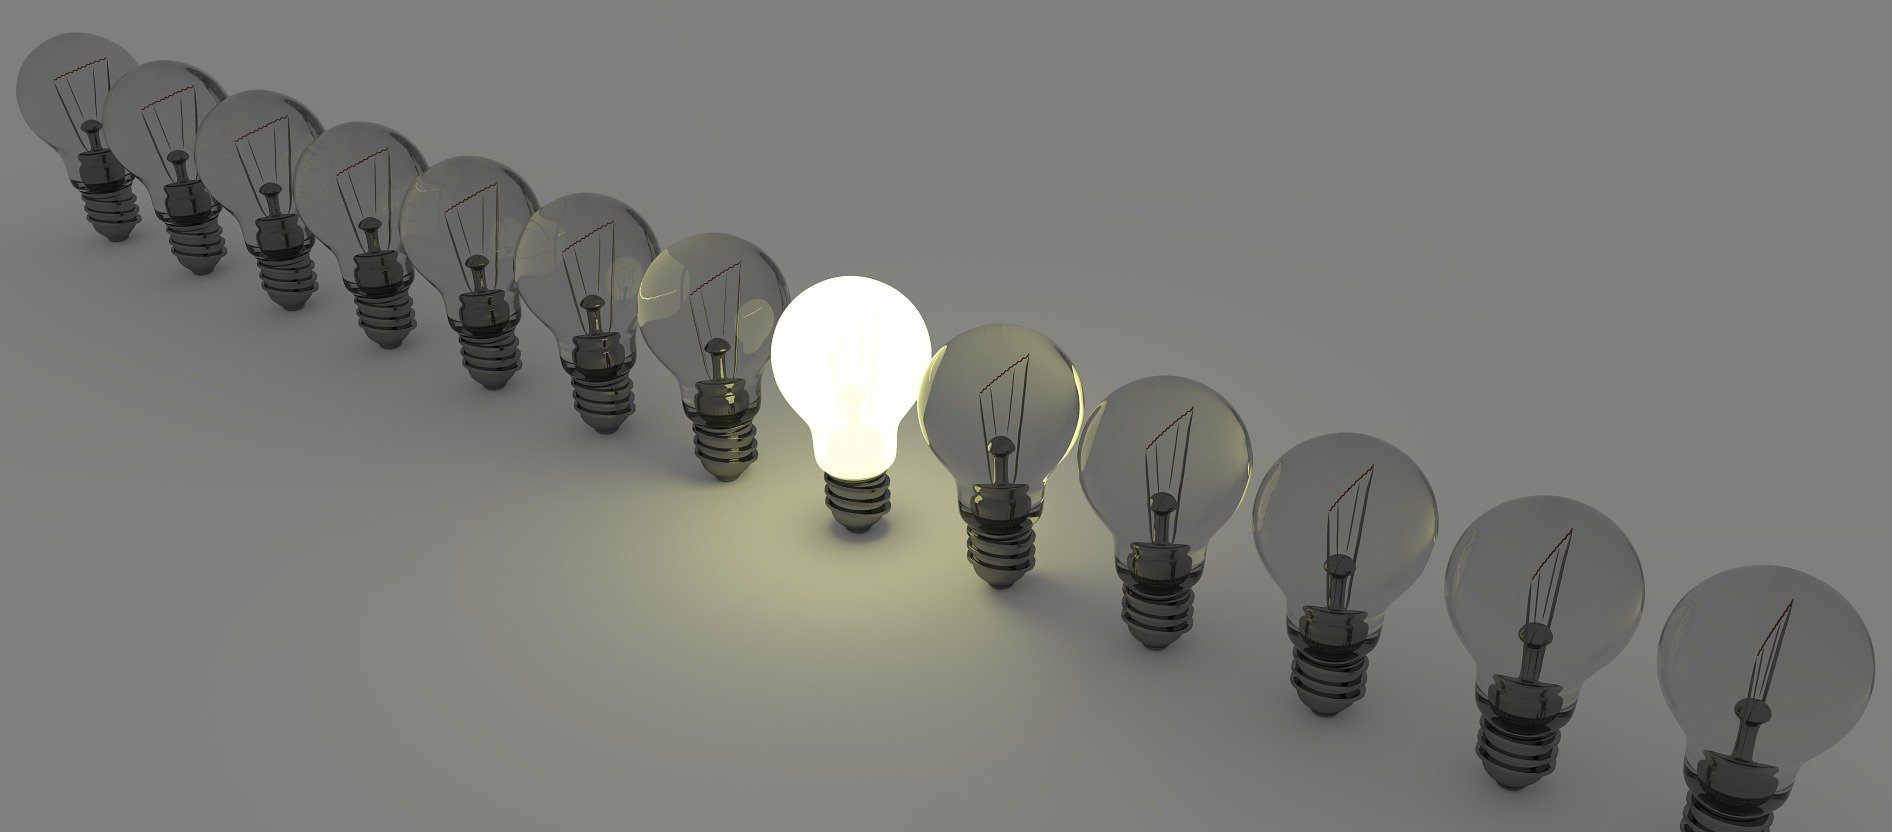 Light bulbs standing in a row. Only one light bulb is brightly illuminated.